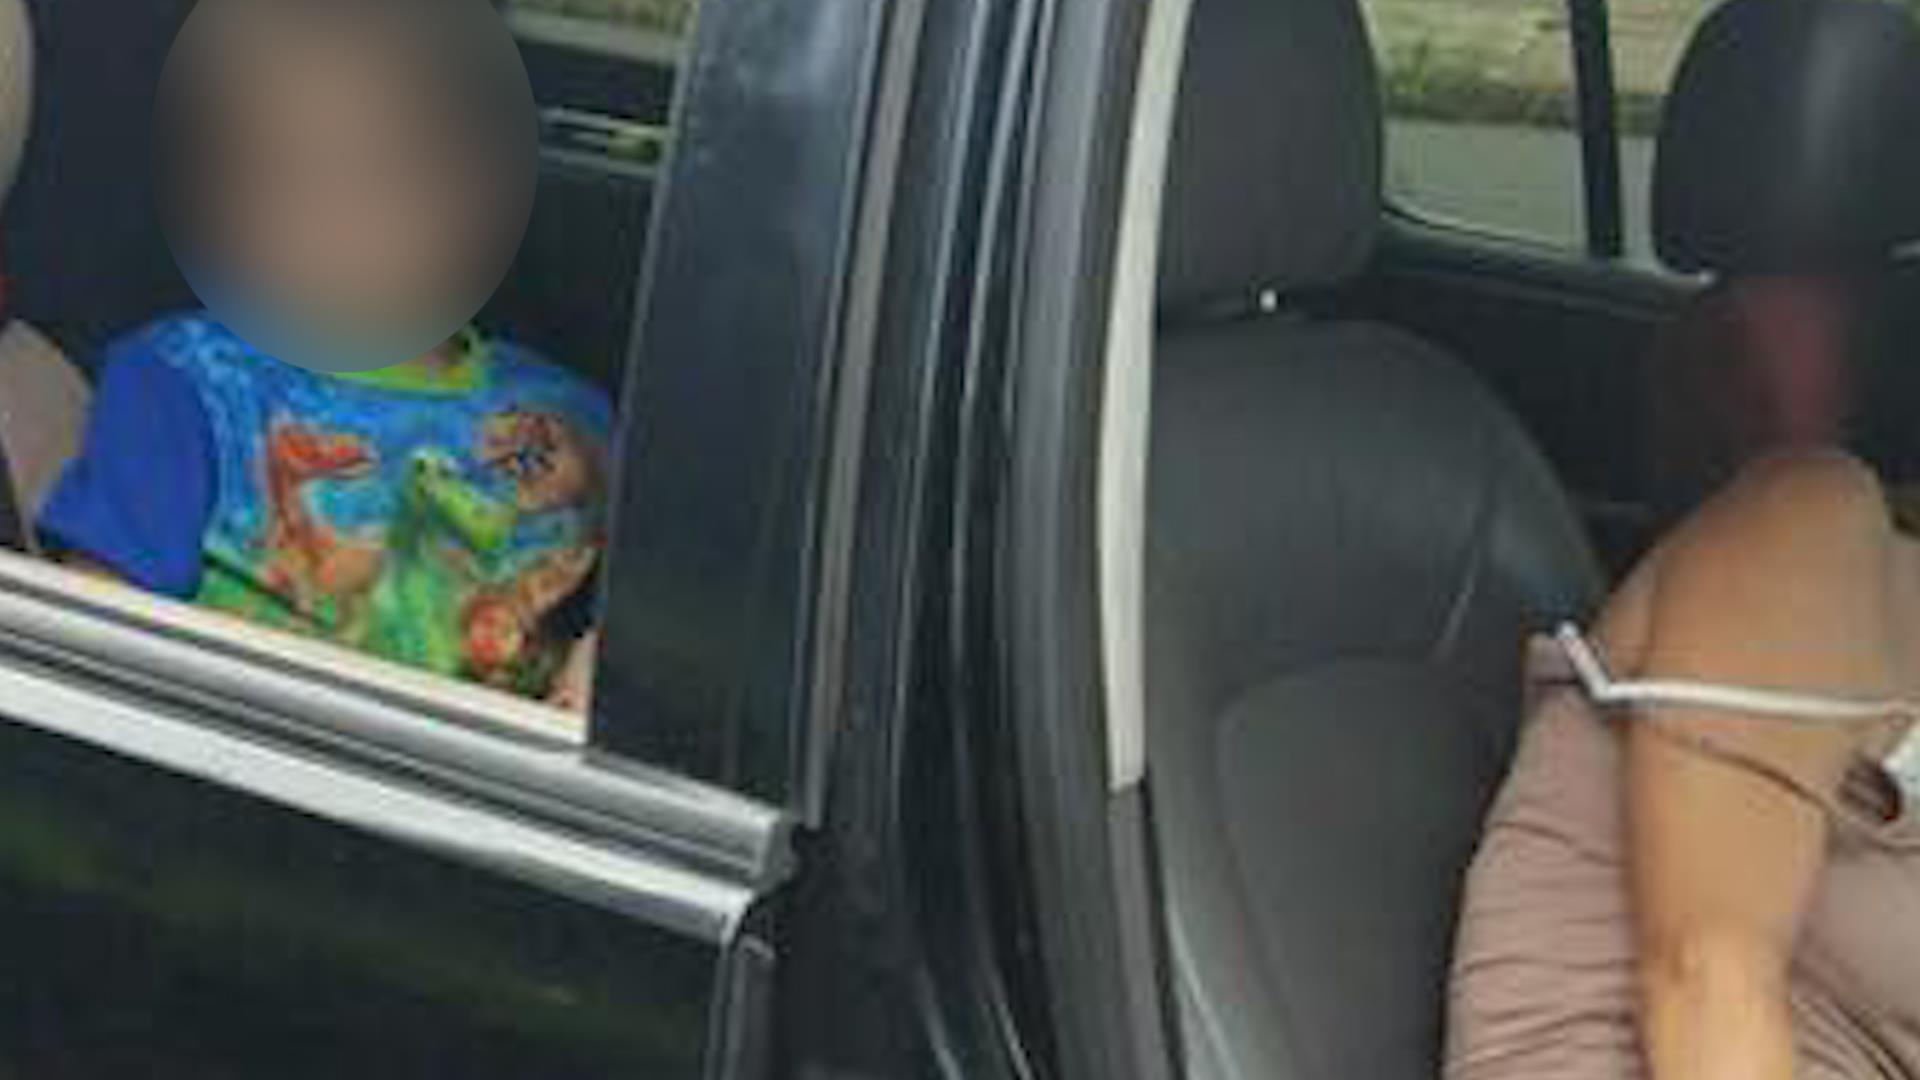 Boy In Shocking Ohio Heroin Picture Heading To New Home